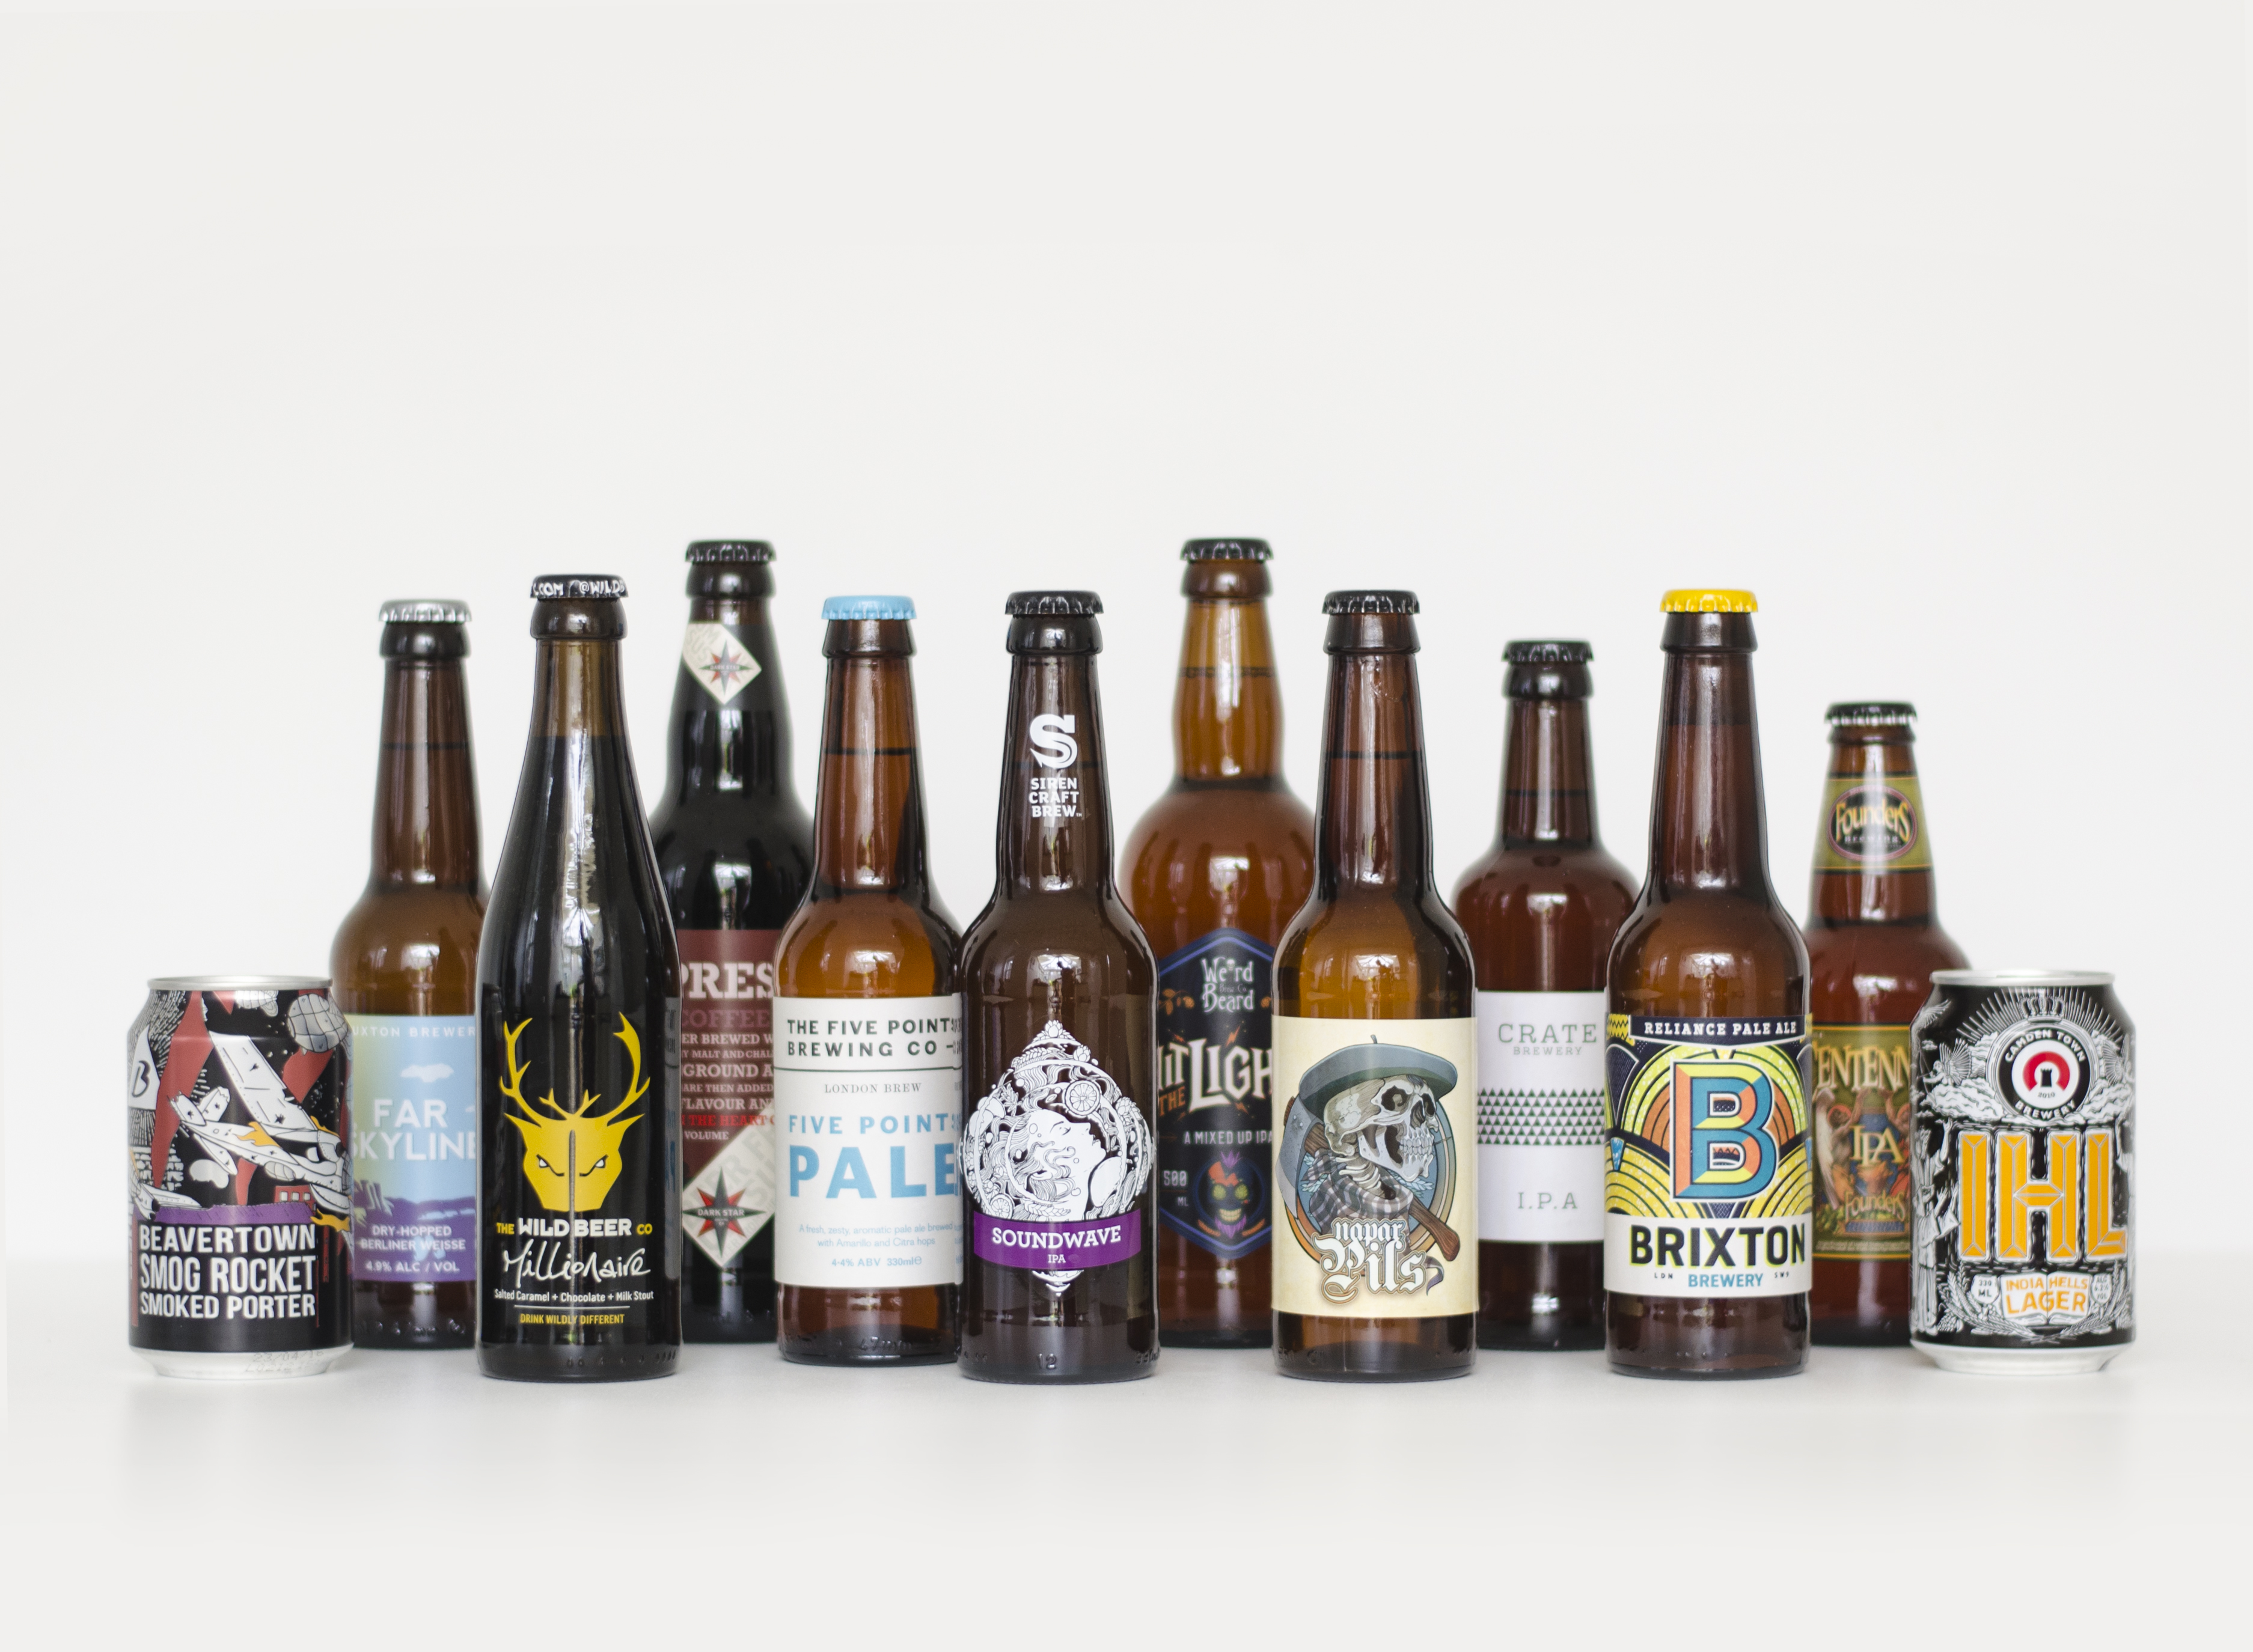 A selection of craft beer